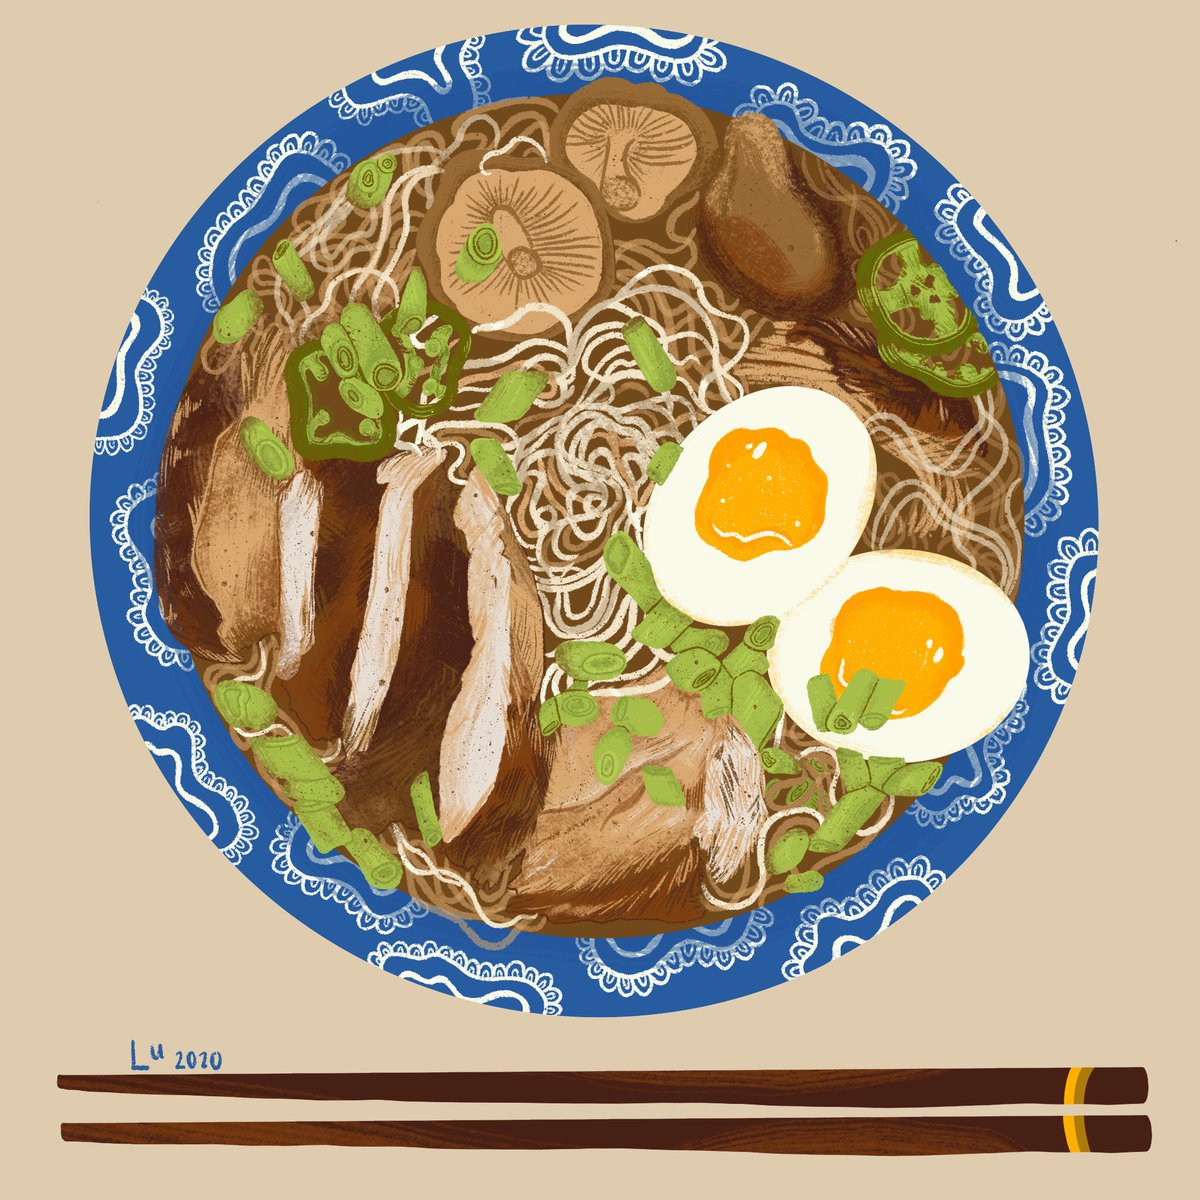 I am so proud of how this ramen bowl turned out  #illustration #digitalartist pic.twitter.com/qbgi2MII82